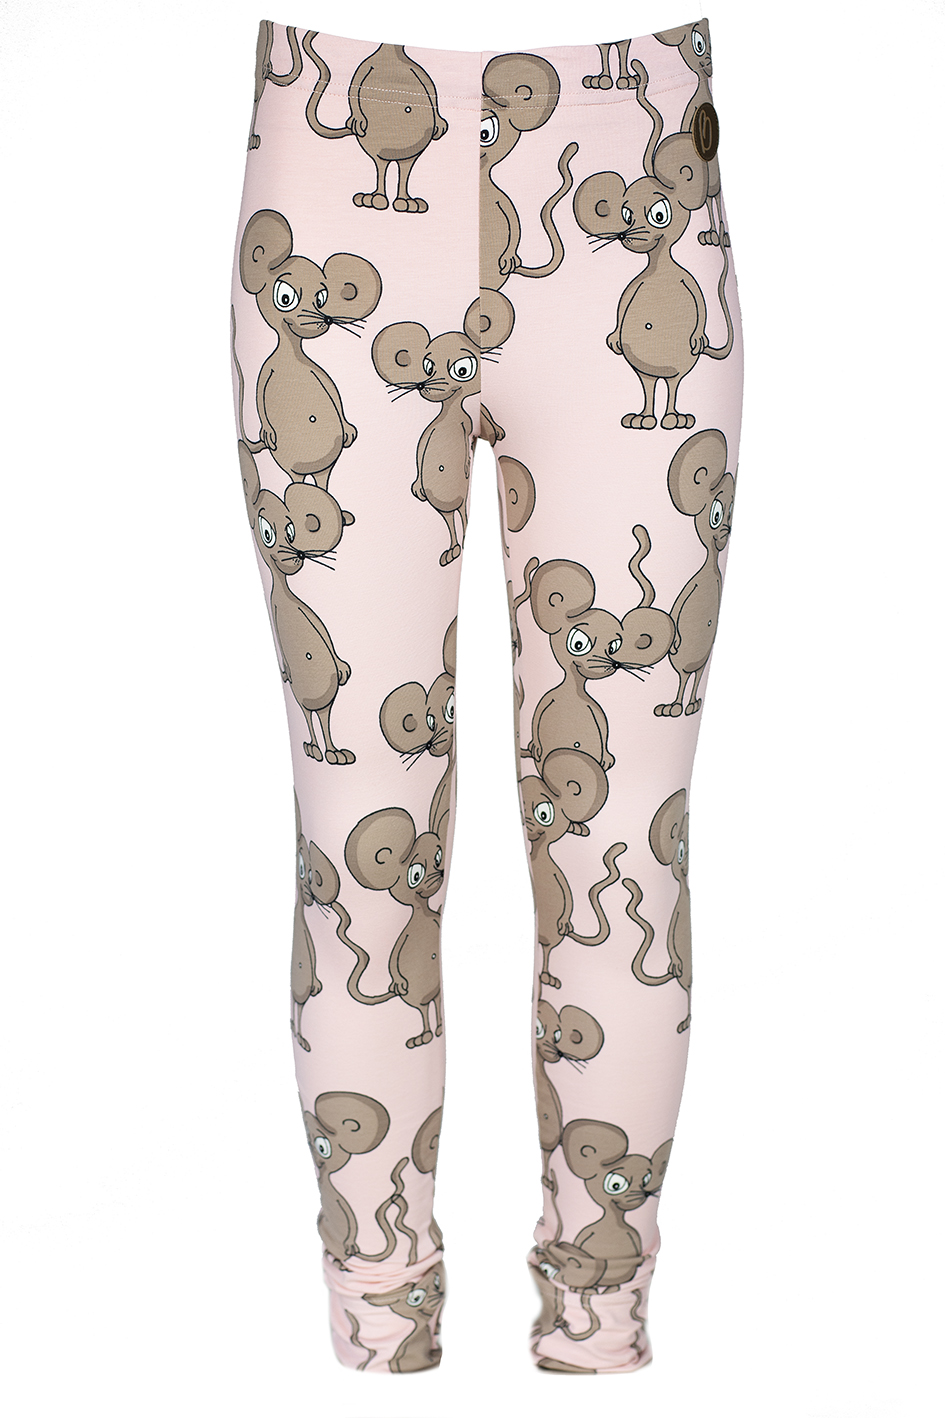 PARIS Leggingsit, Mouse Pink